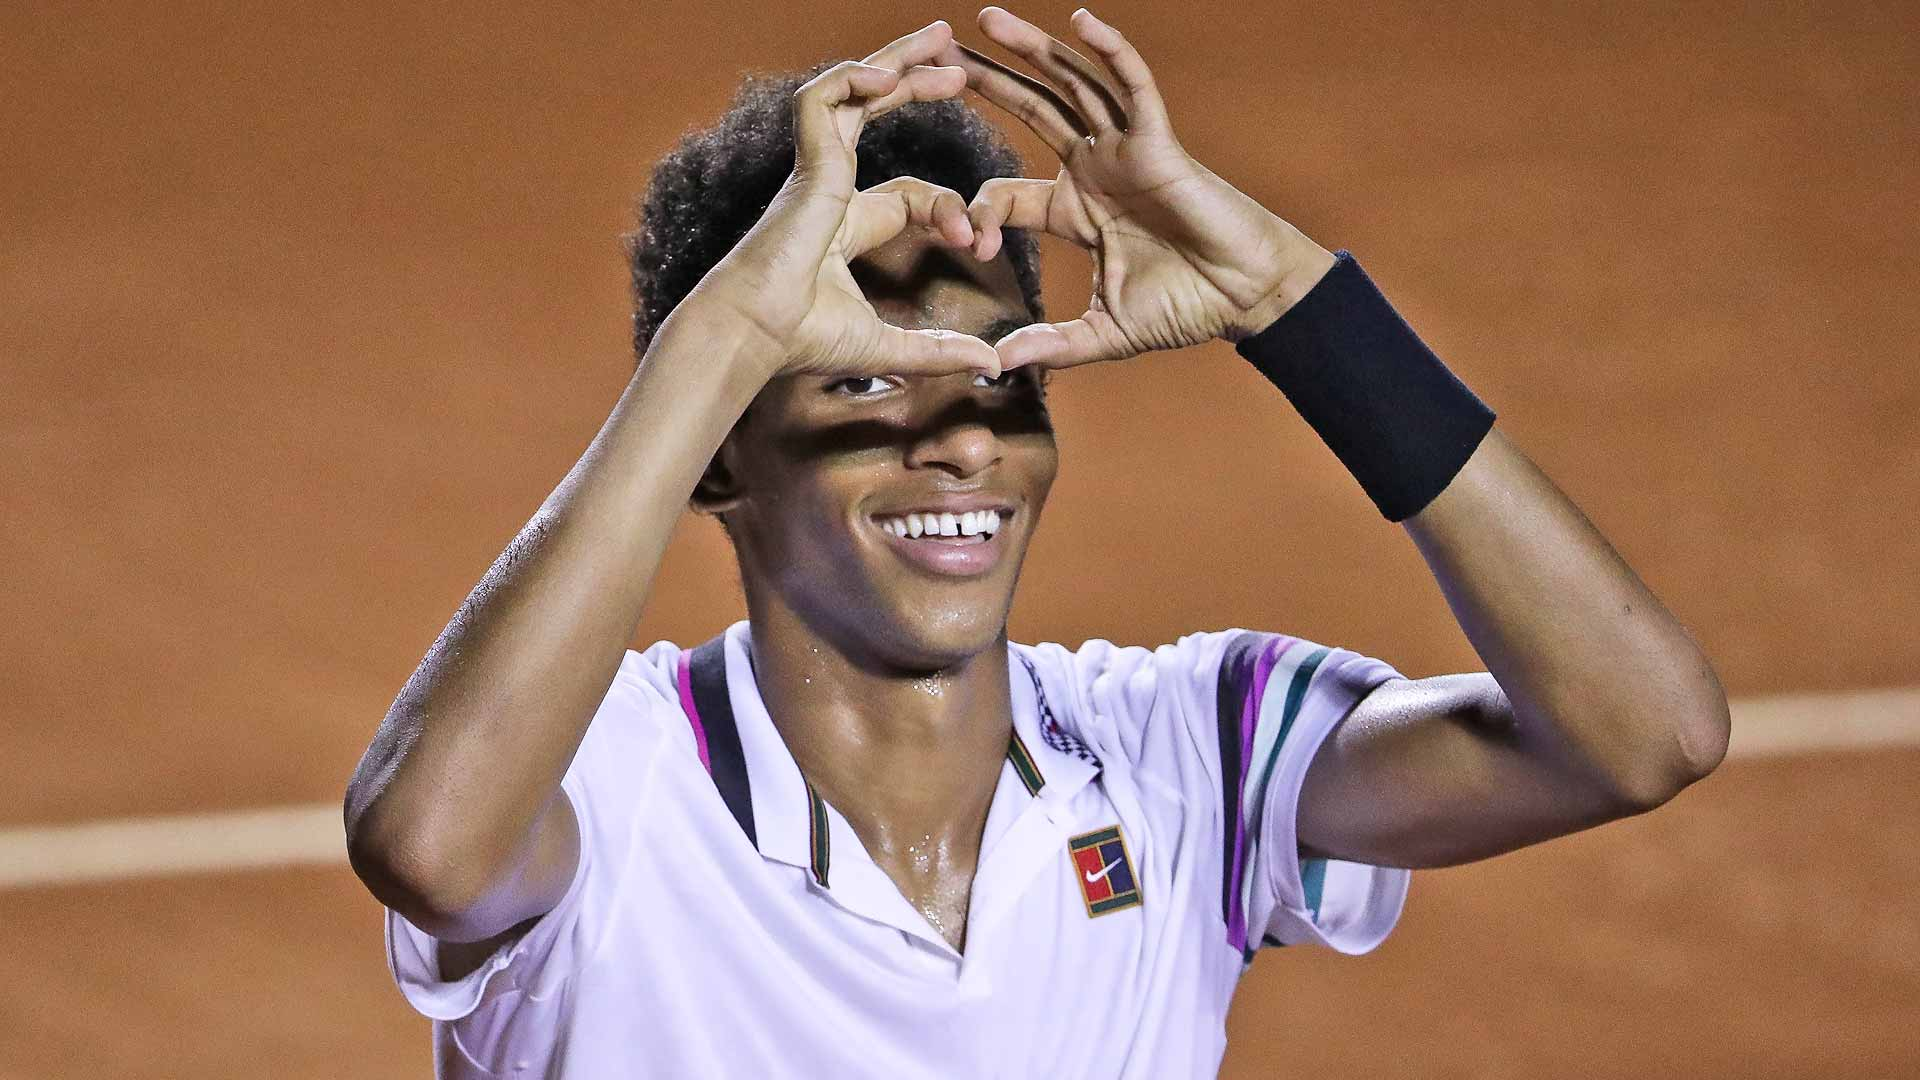 <a href='https://www.atptour.com/en/players/felix-auger-aliassime/ag37/overview'>Felix Auger-Aliassime</a> thanks the crowd for its support during his semi-final in Rio de Janeiro.